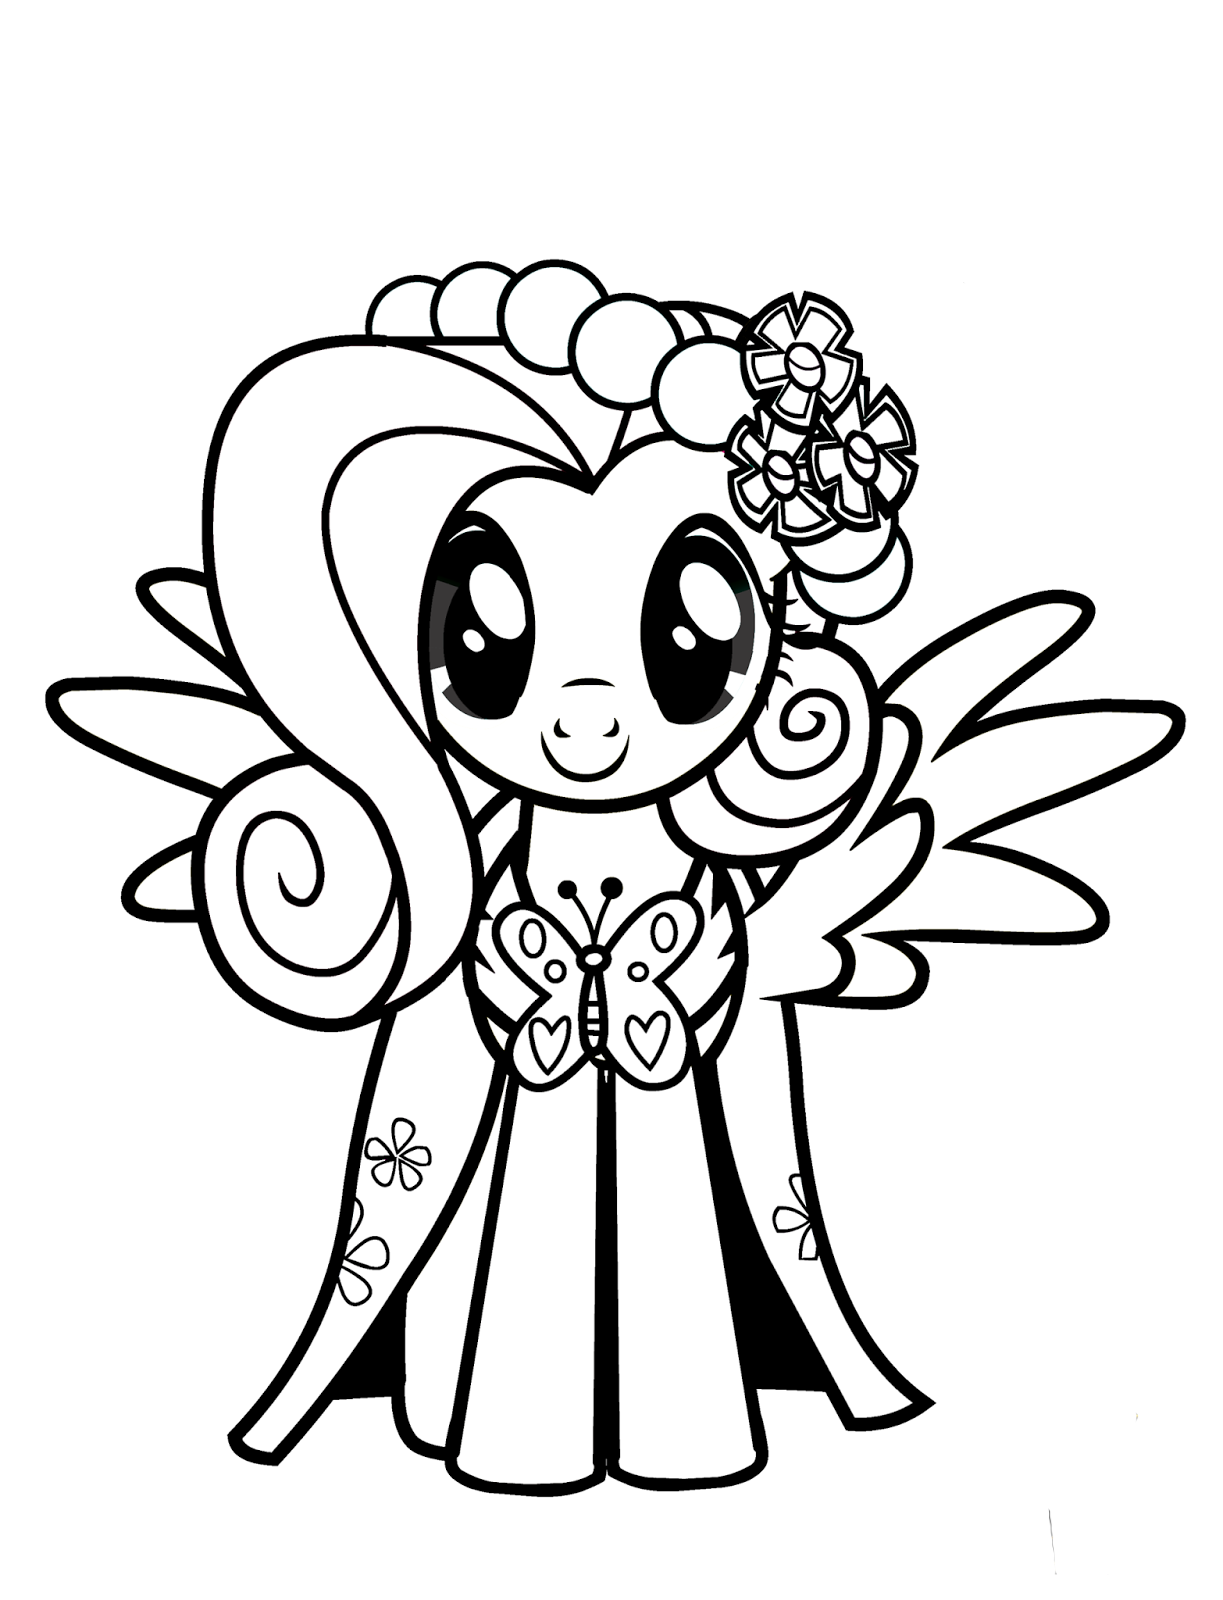 mlp pics fluttershy coloring pages best coloring pages for kids mlp pics